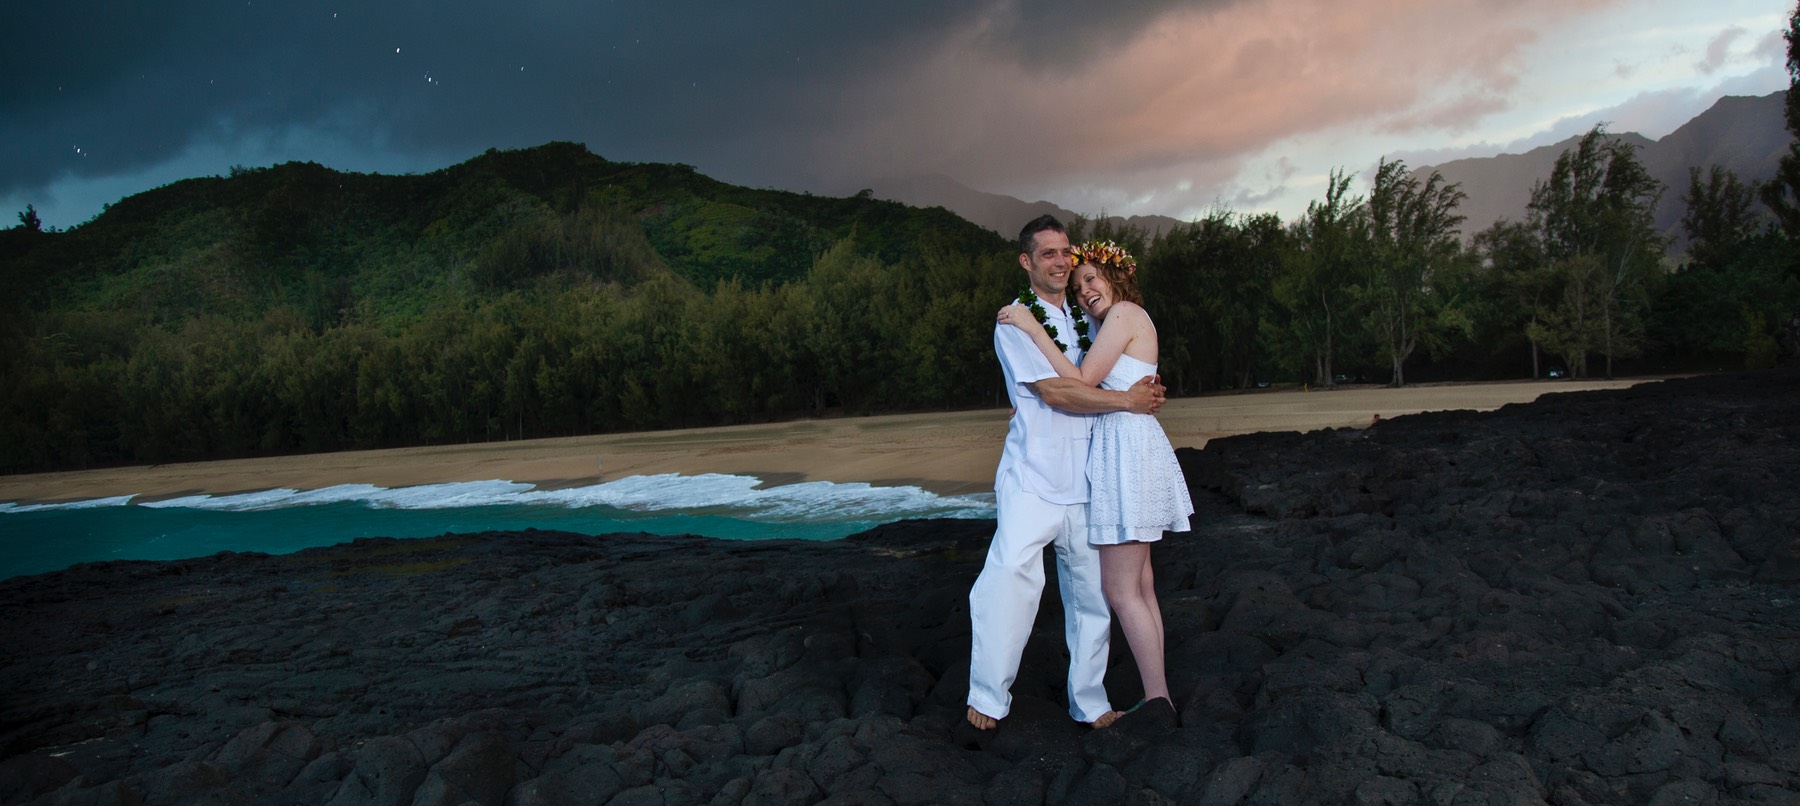 Kauai wedding photographer starlight wedding Lumahai photography by Difraser